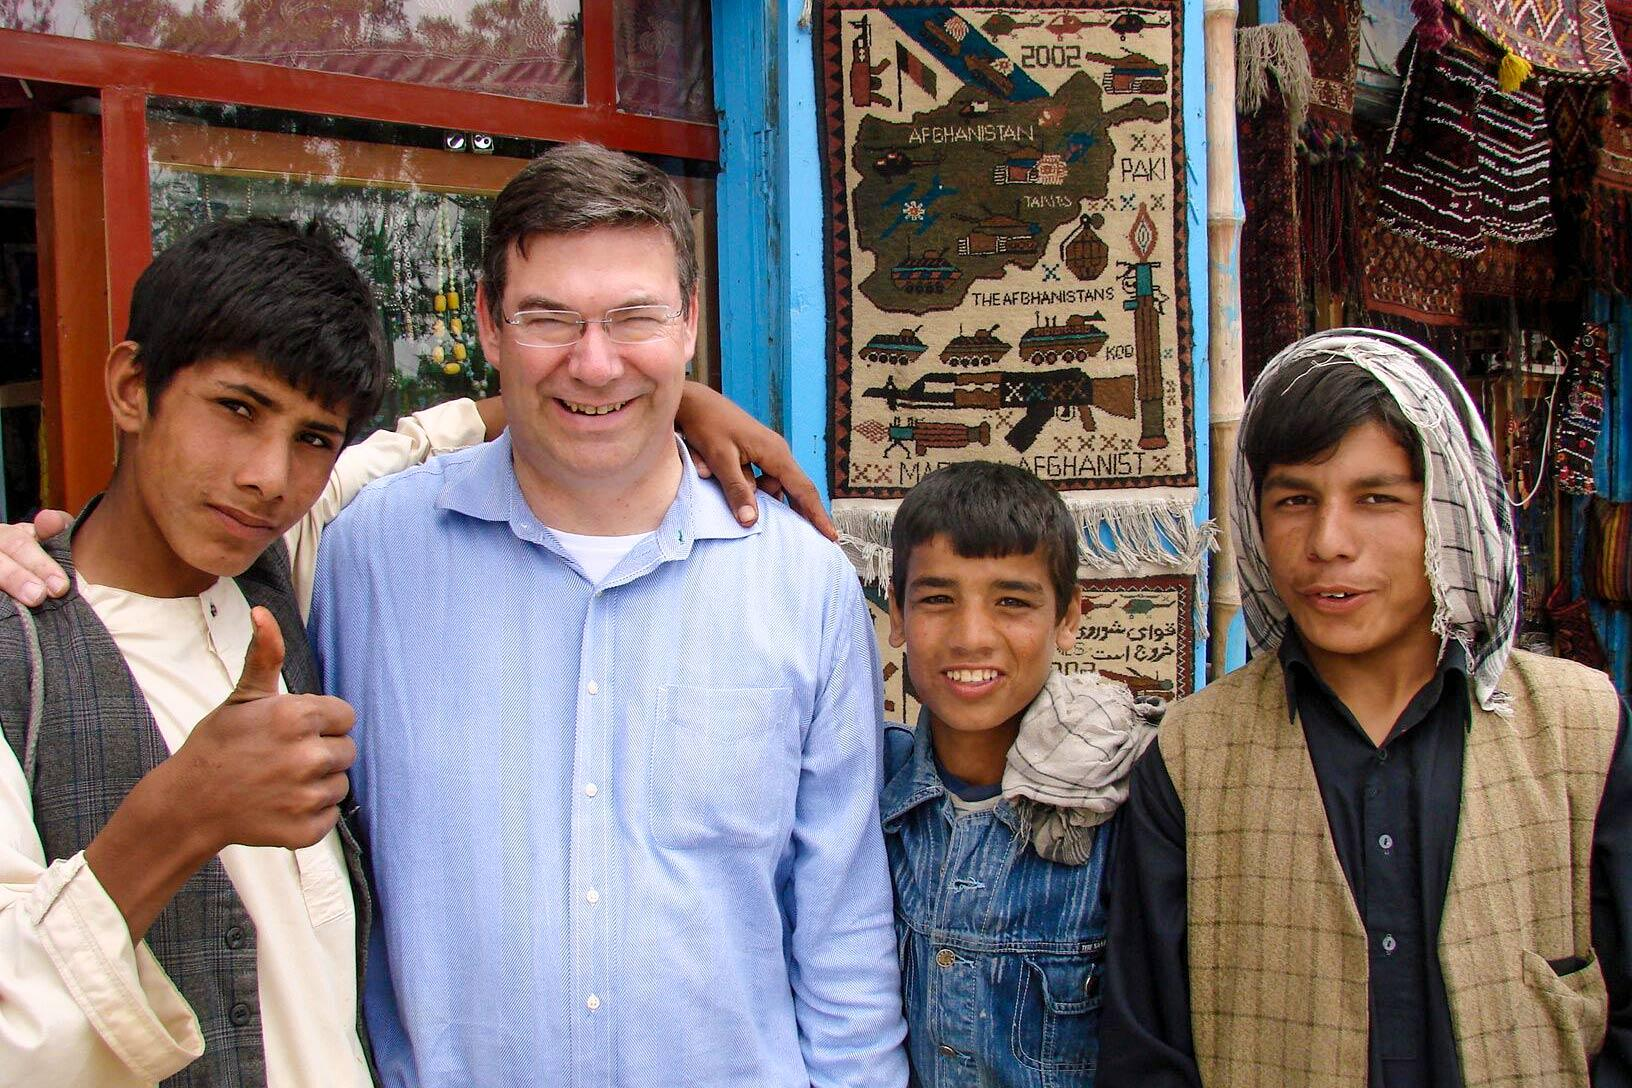 Holland with Afghan studnets in Mazar-i-Sharif, Afghanistan.